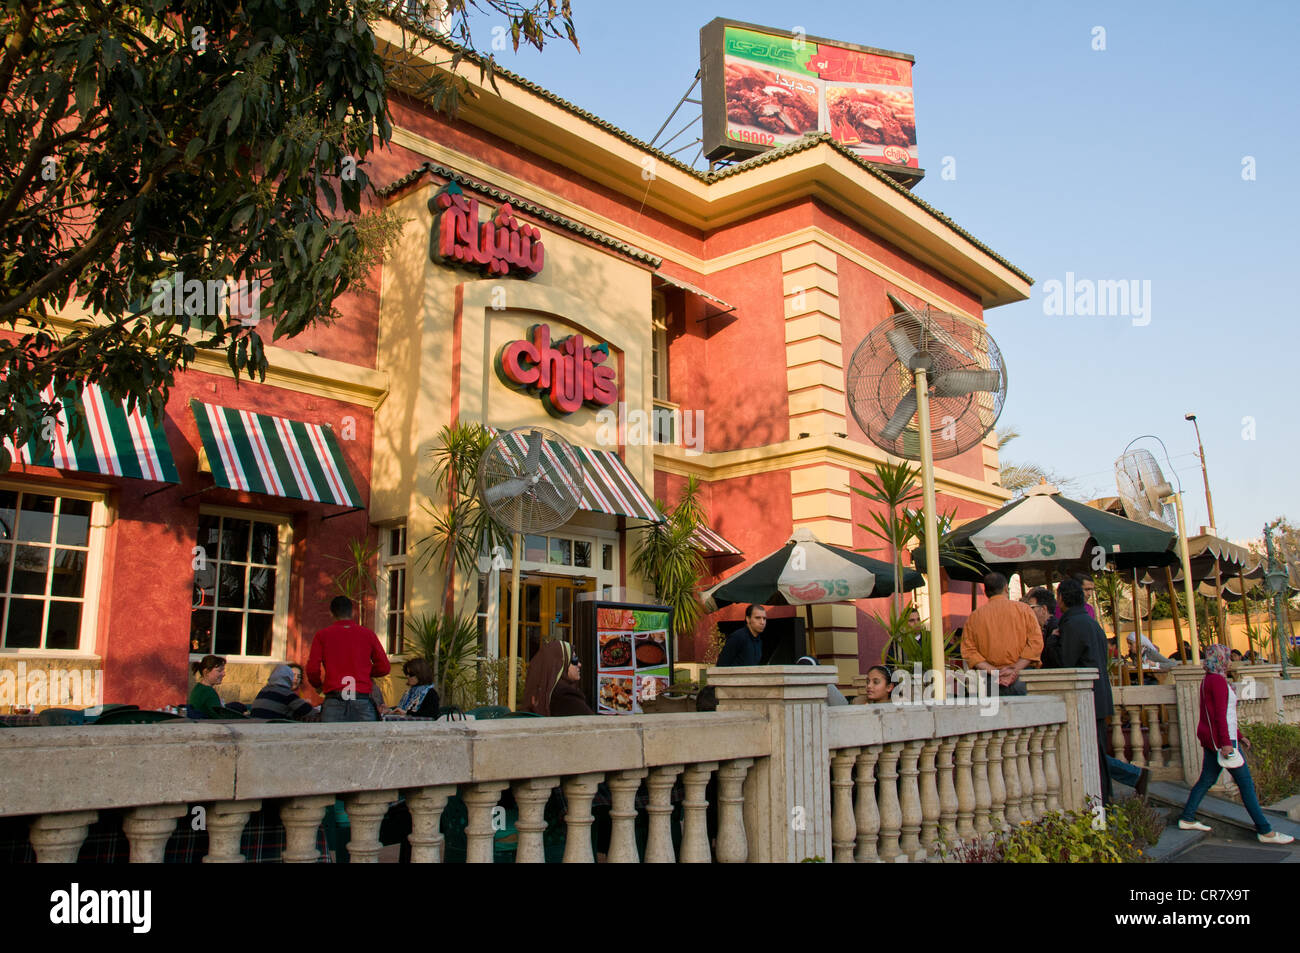 The Chili S Restaurant Chain Has A Branch In The Upscale Sector Of Stock Photo Alamy